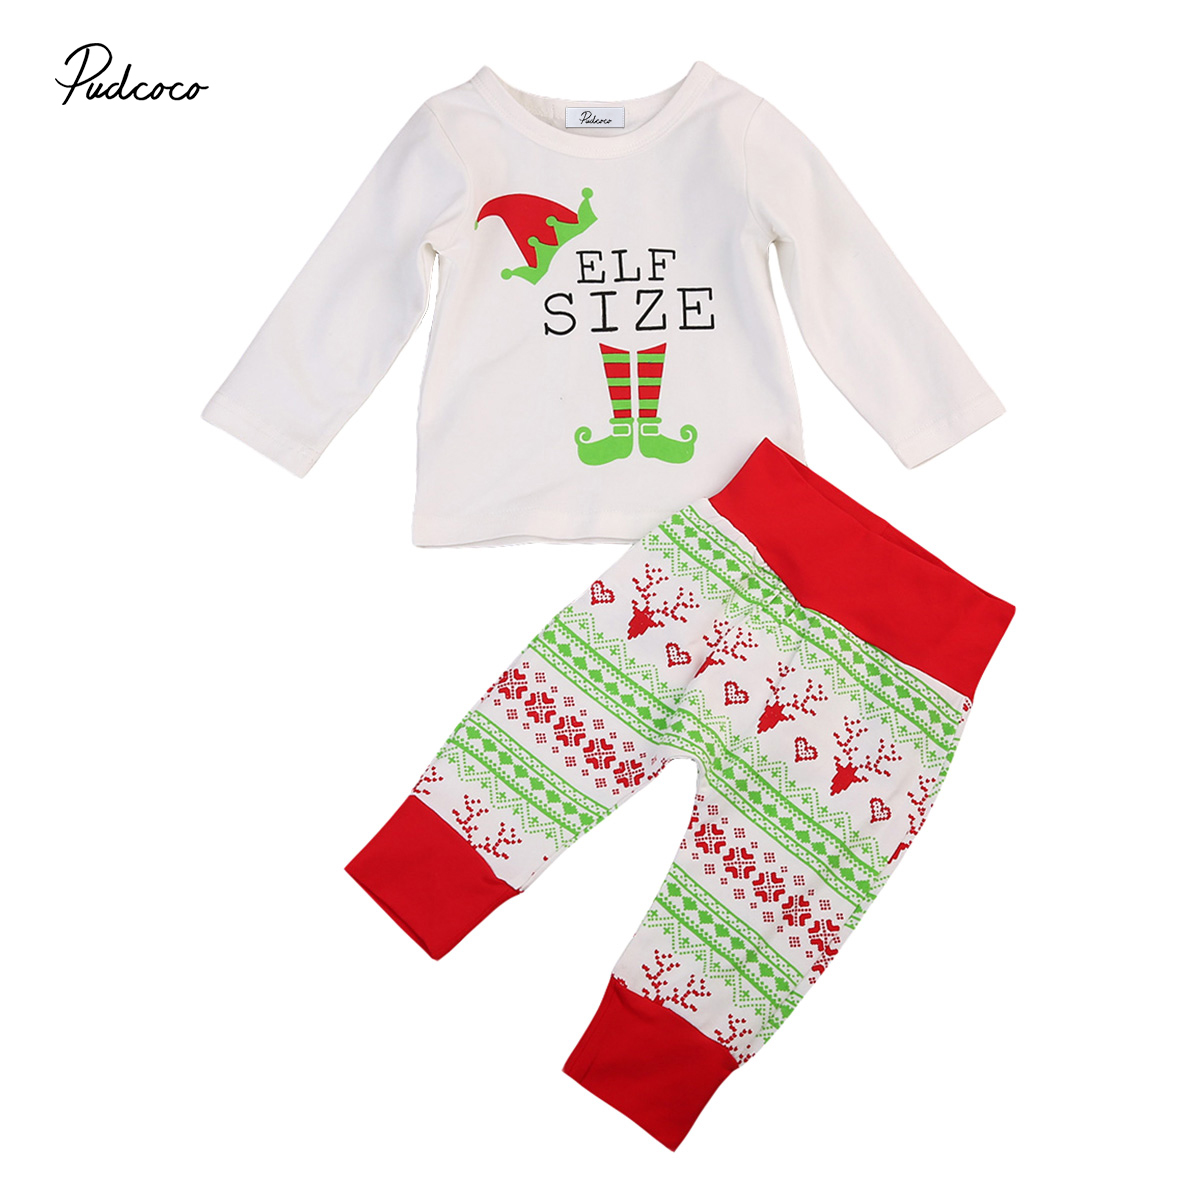 Babies 2PCS Xmas Clothing Set Pjs Sets Cute Infant Baby Boy Girl T-shirt Tops Pants Baby Christmas Outfits Clothes 0-24M